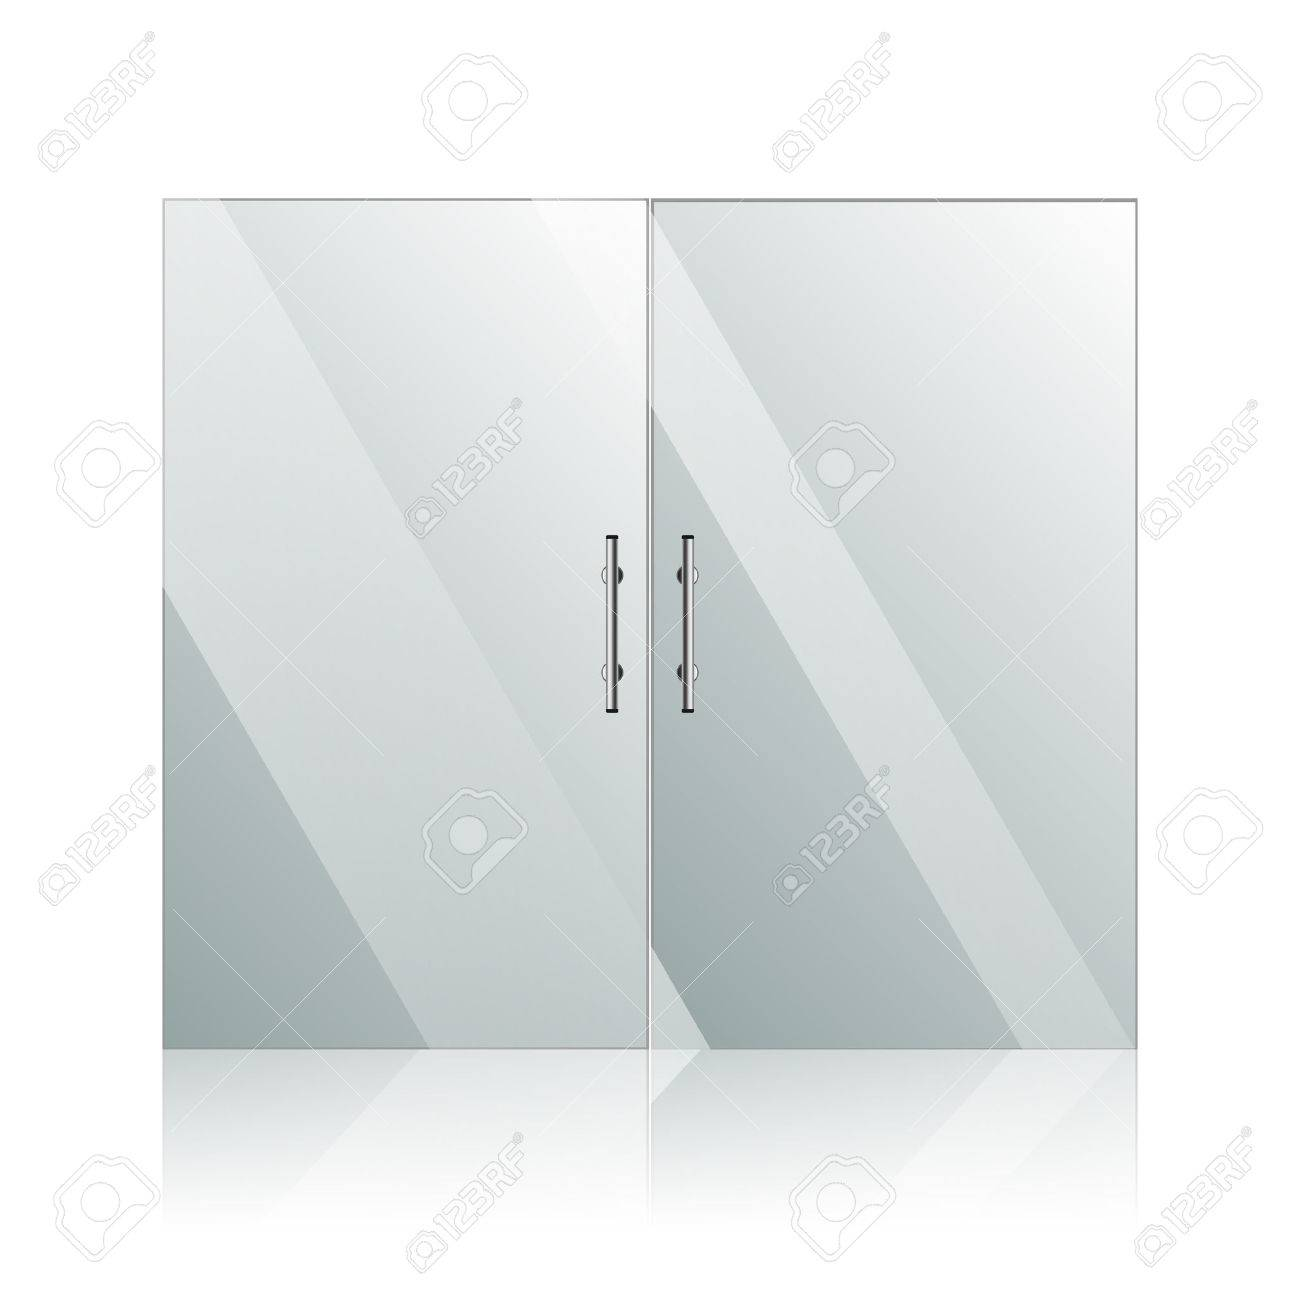 Vector transparent glass doors with mirror image in steel frame isolated on white wall. Architectural interior symbol. EPS 10 - 40064598